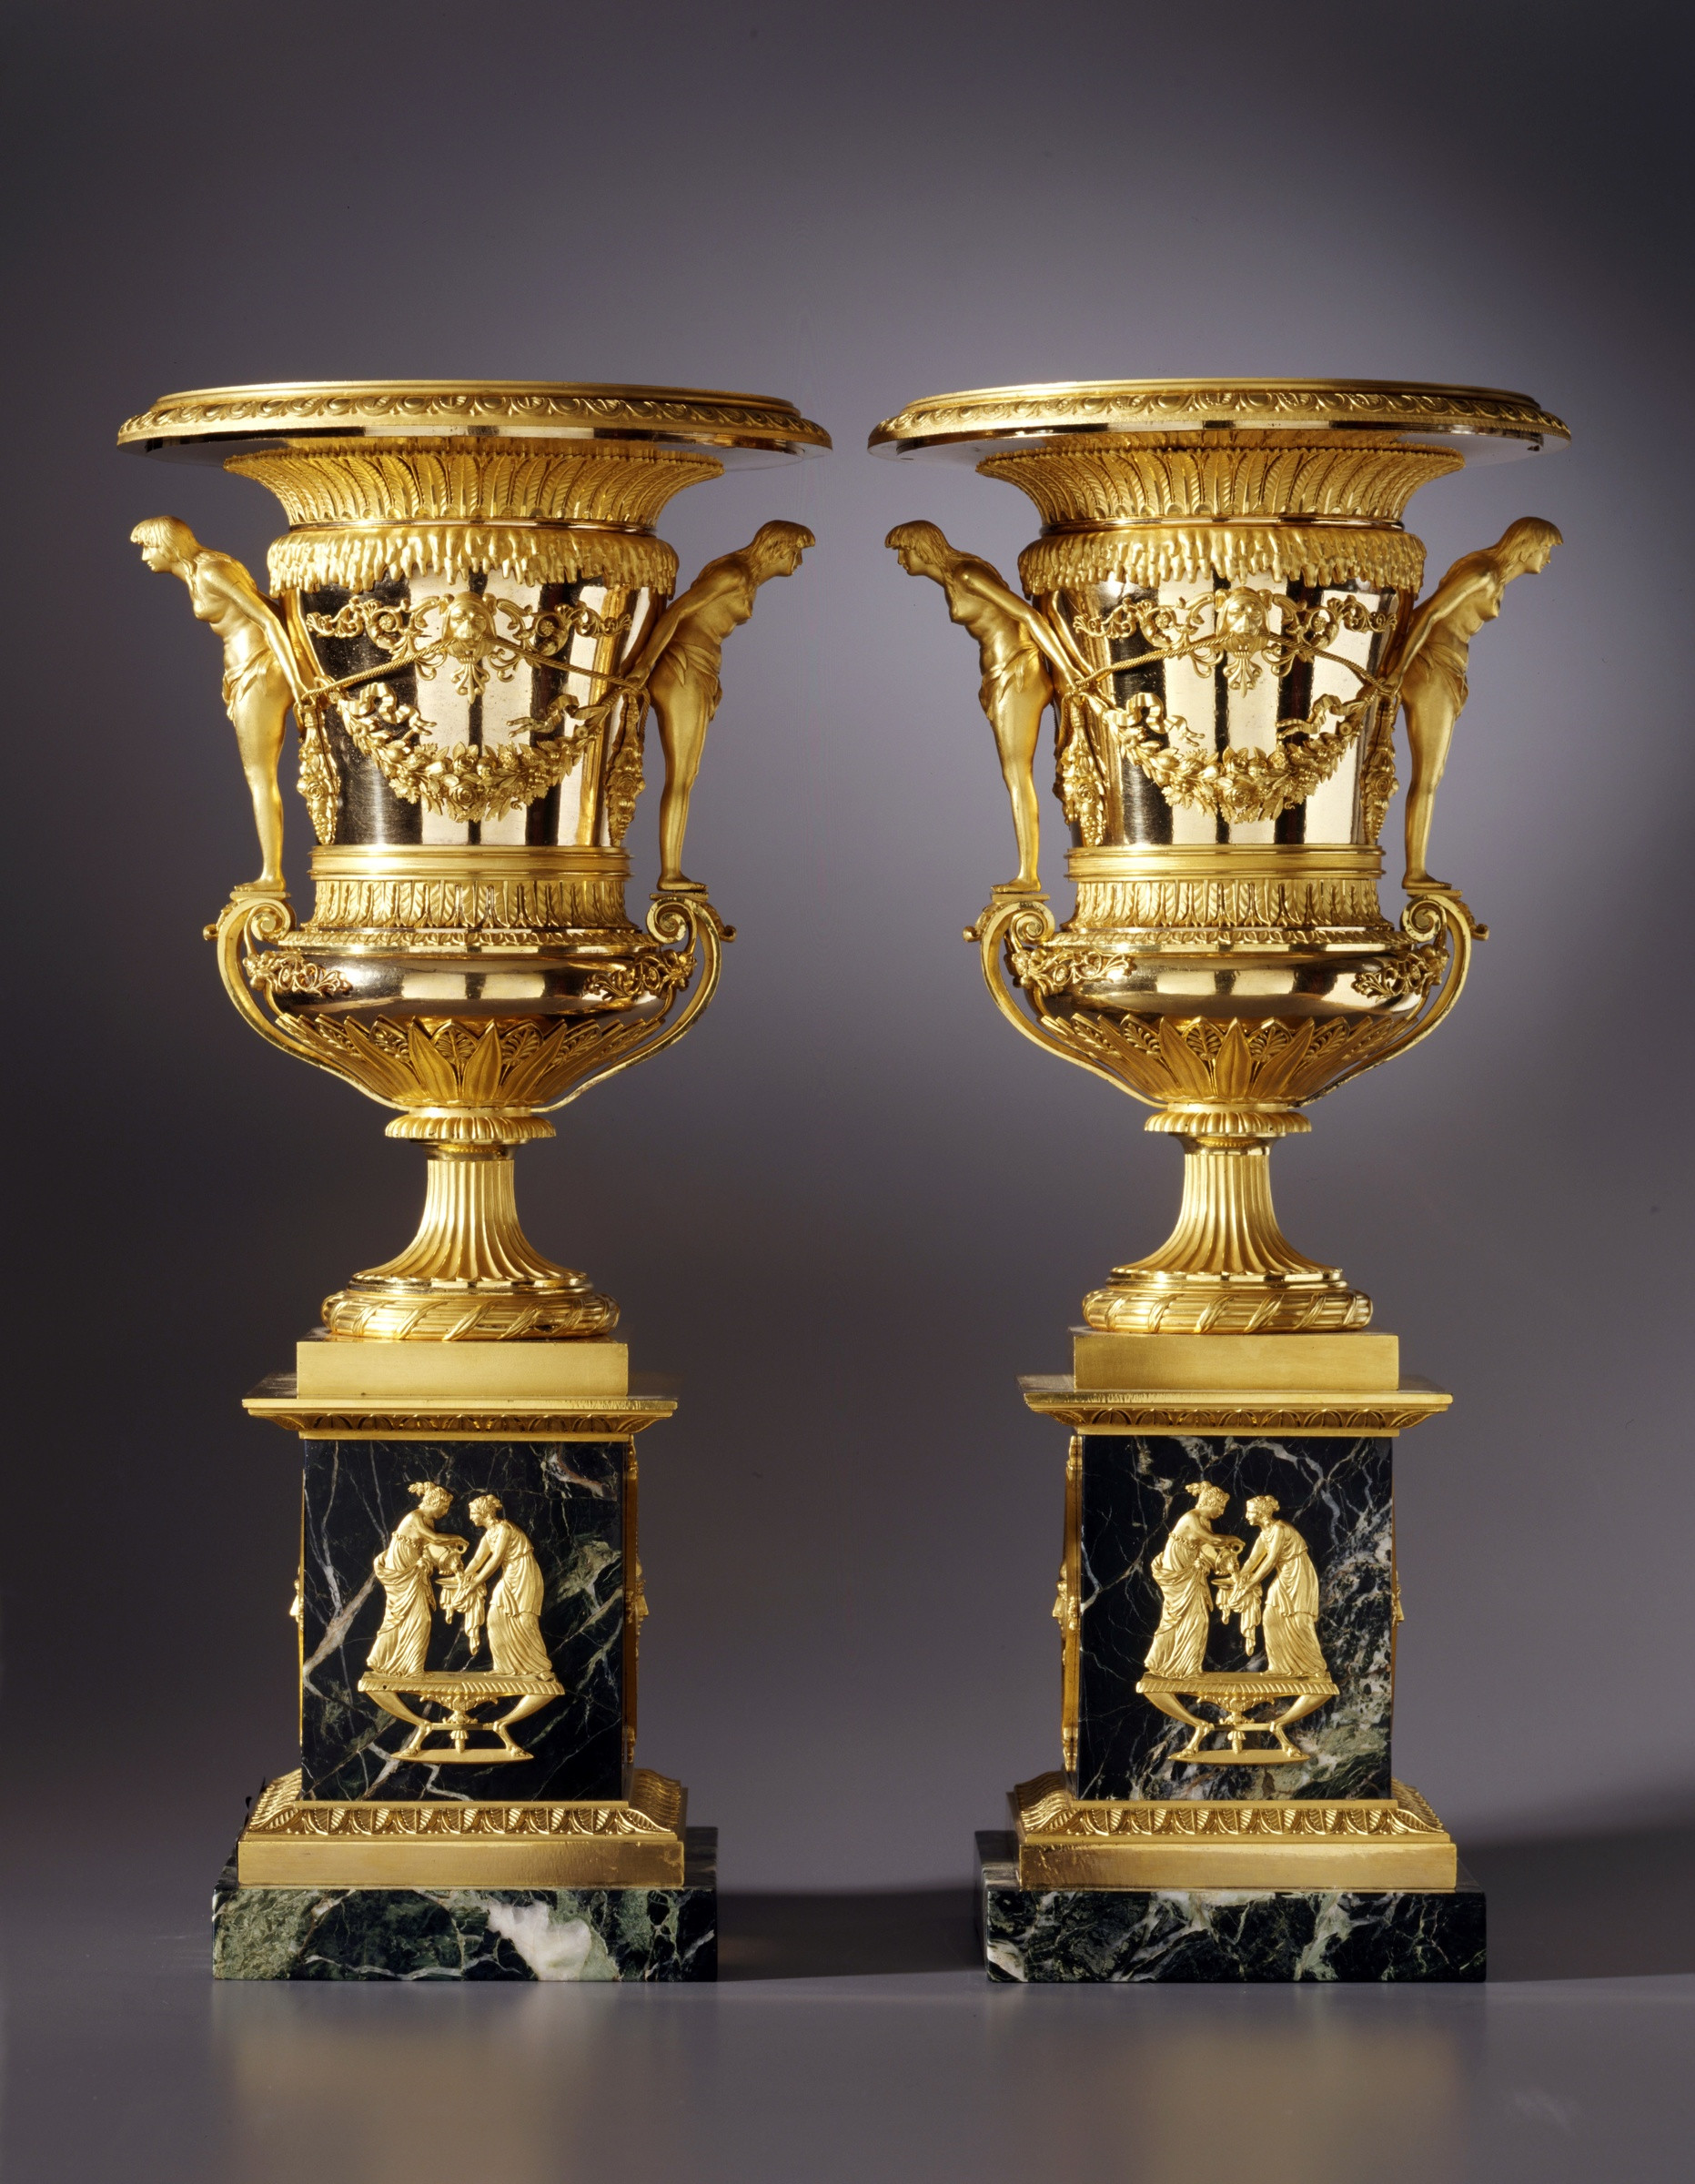 Gold Leaf Vase Of Friedrich Bergenfeldt attributed to A Pair Of Large Sized St with A Pair Of Large Sized St Petersburg Empire Vases attributed to Friedrich Bergenfeldt